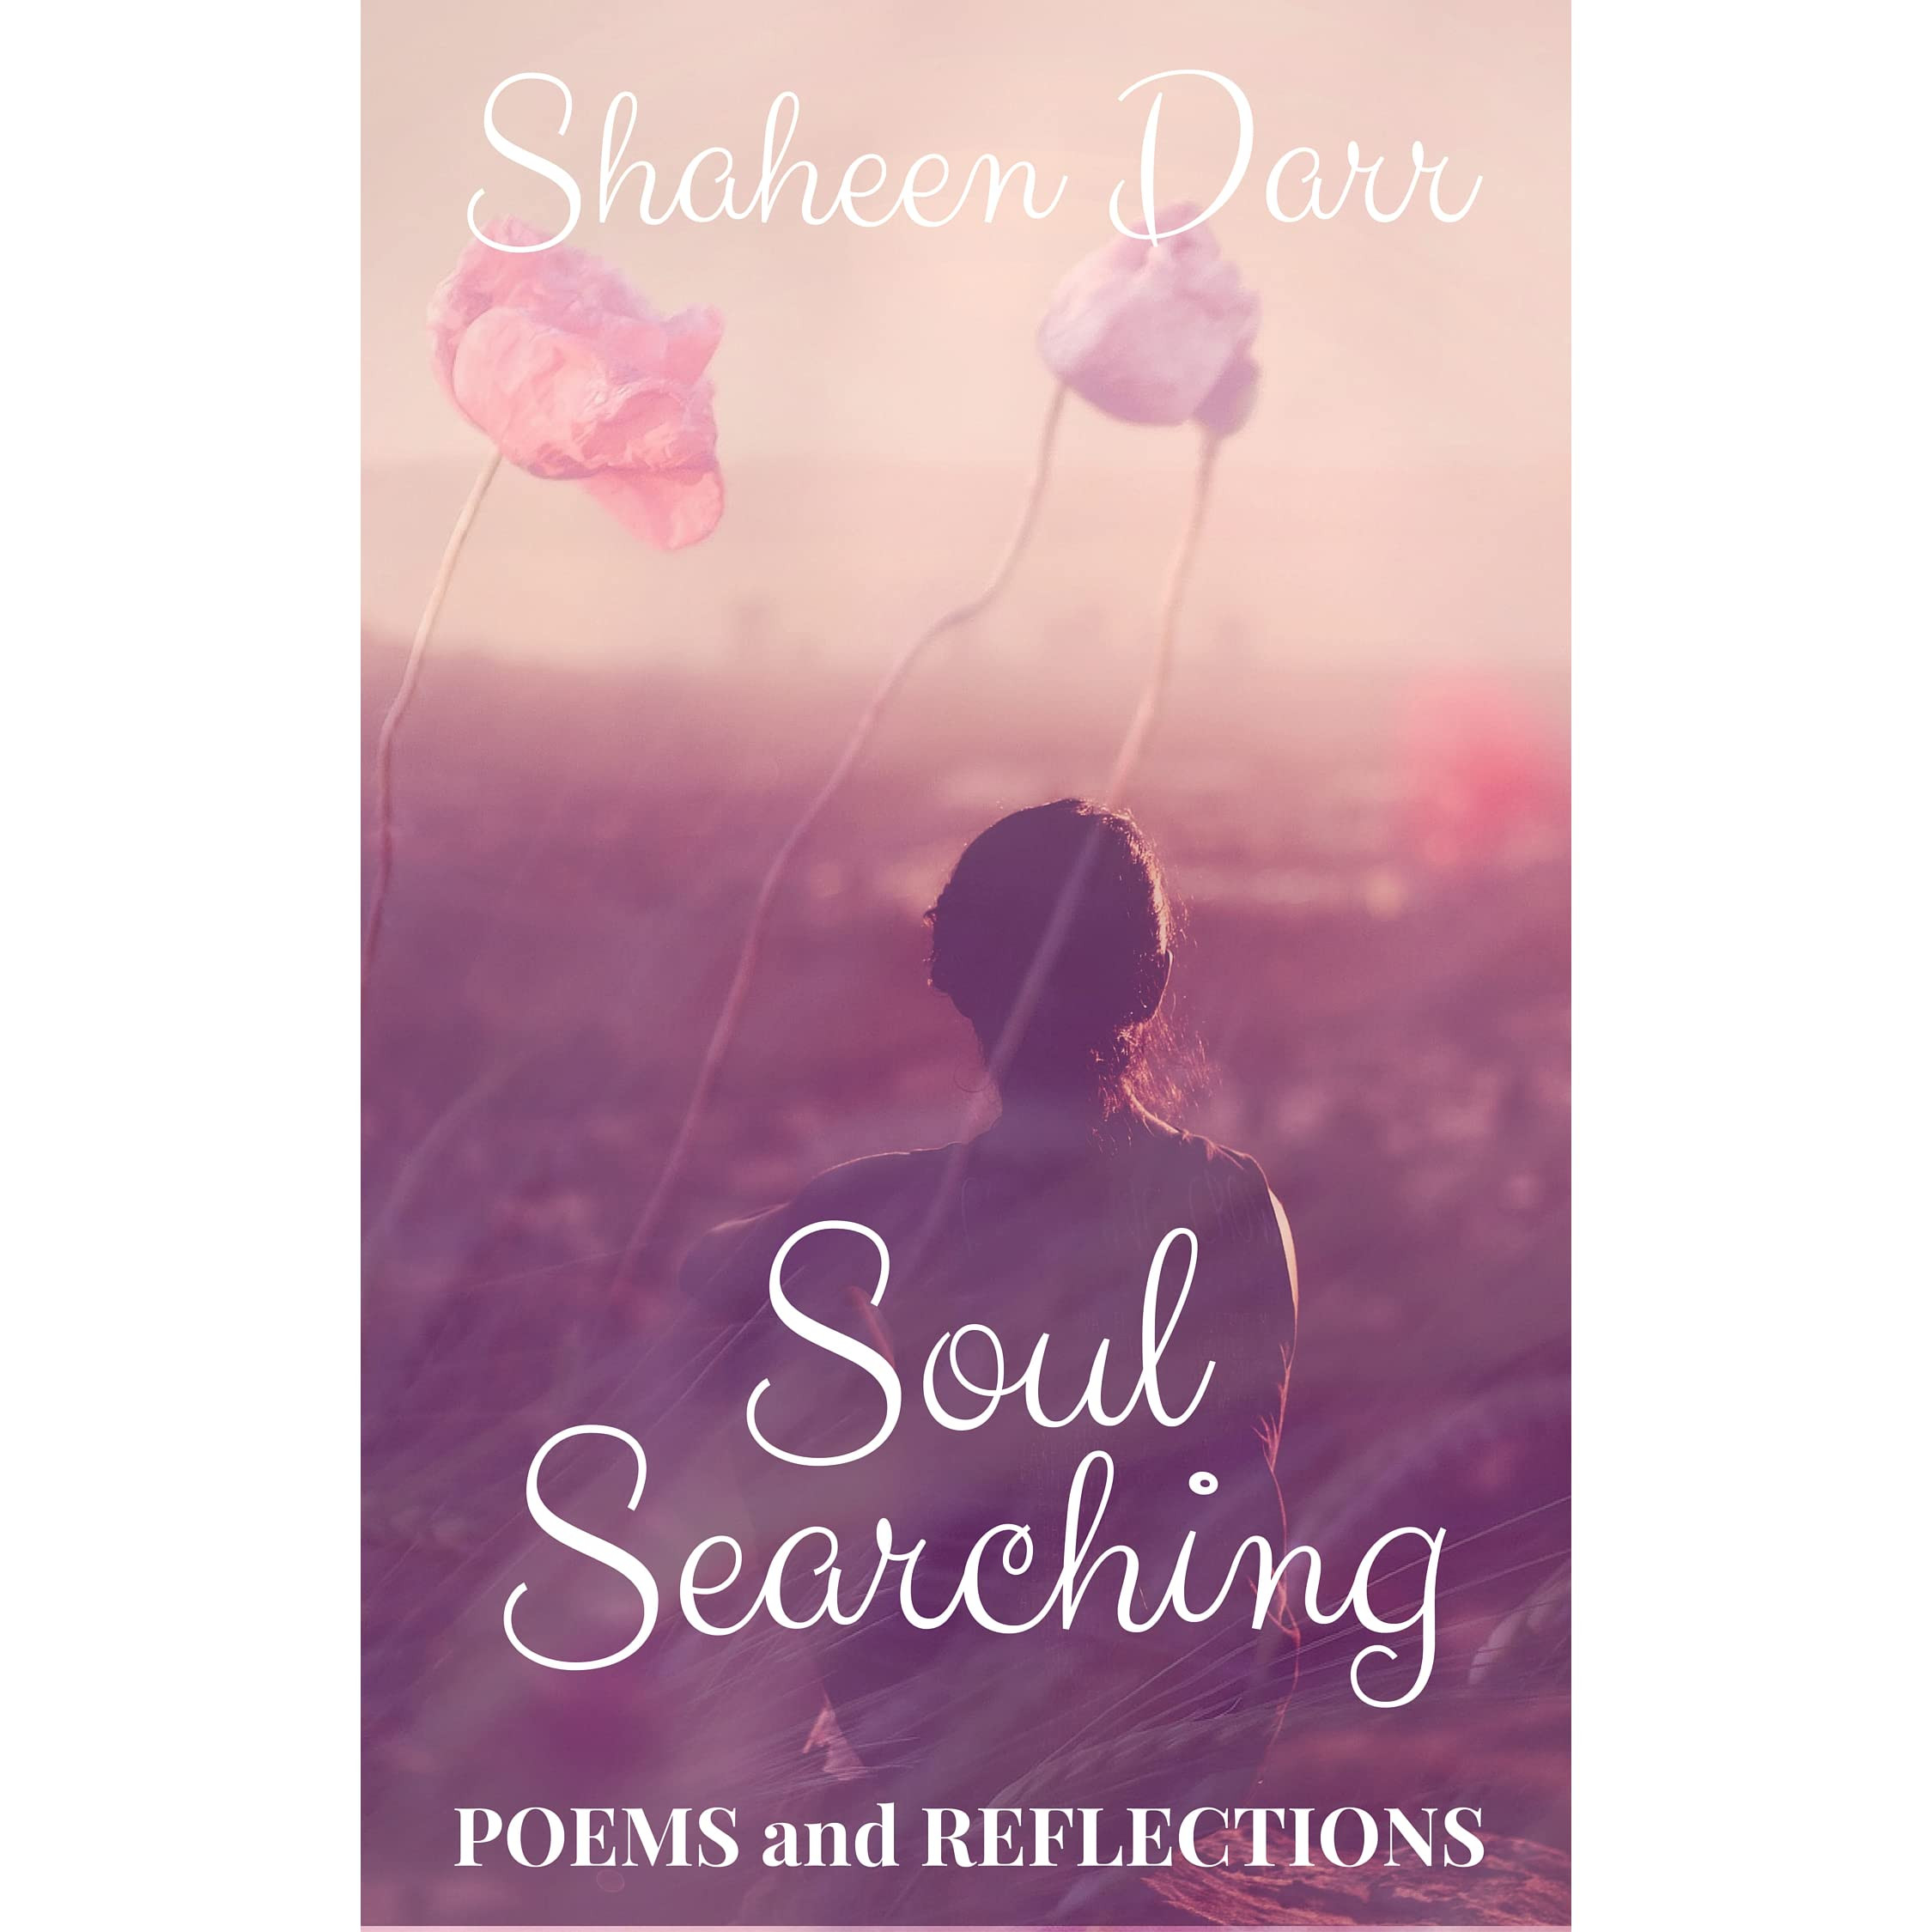 Soul Searching by Shaheen Darr